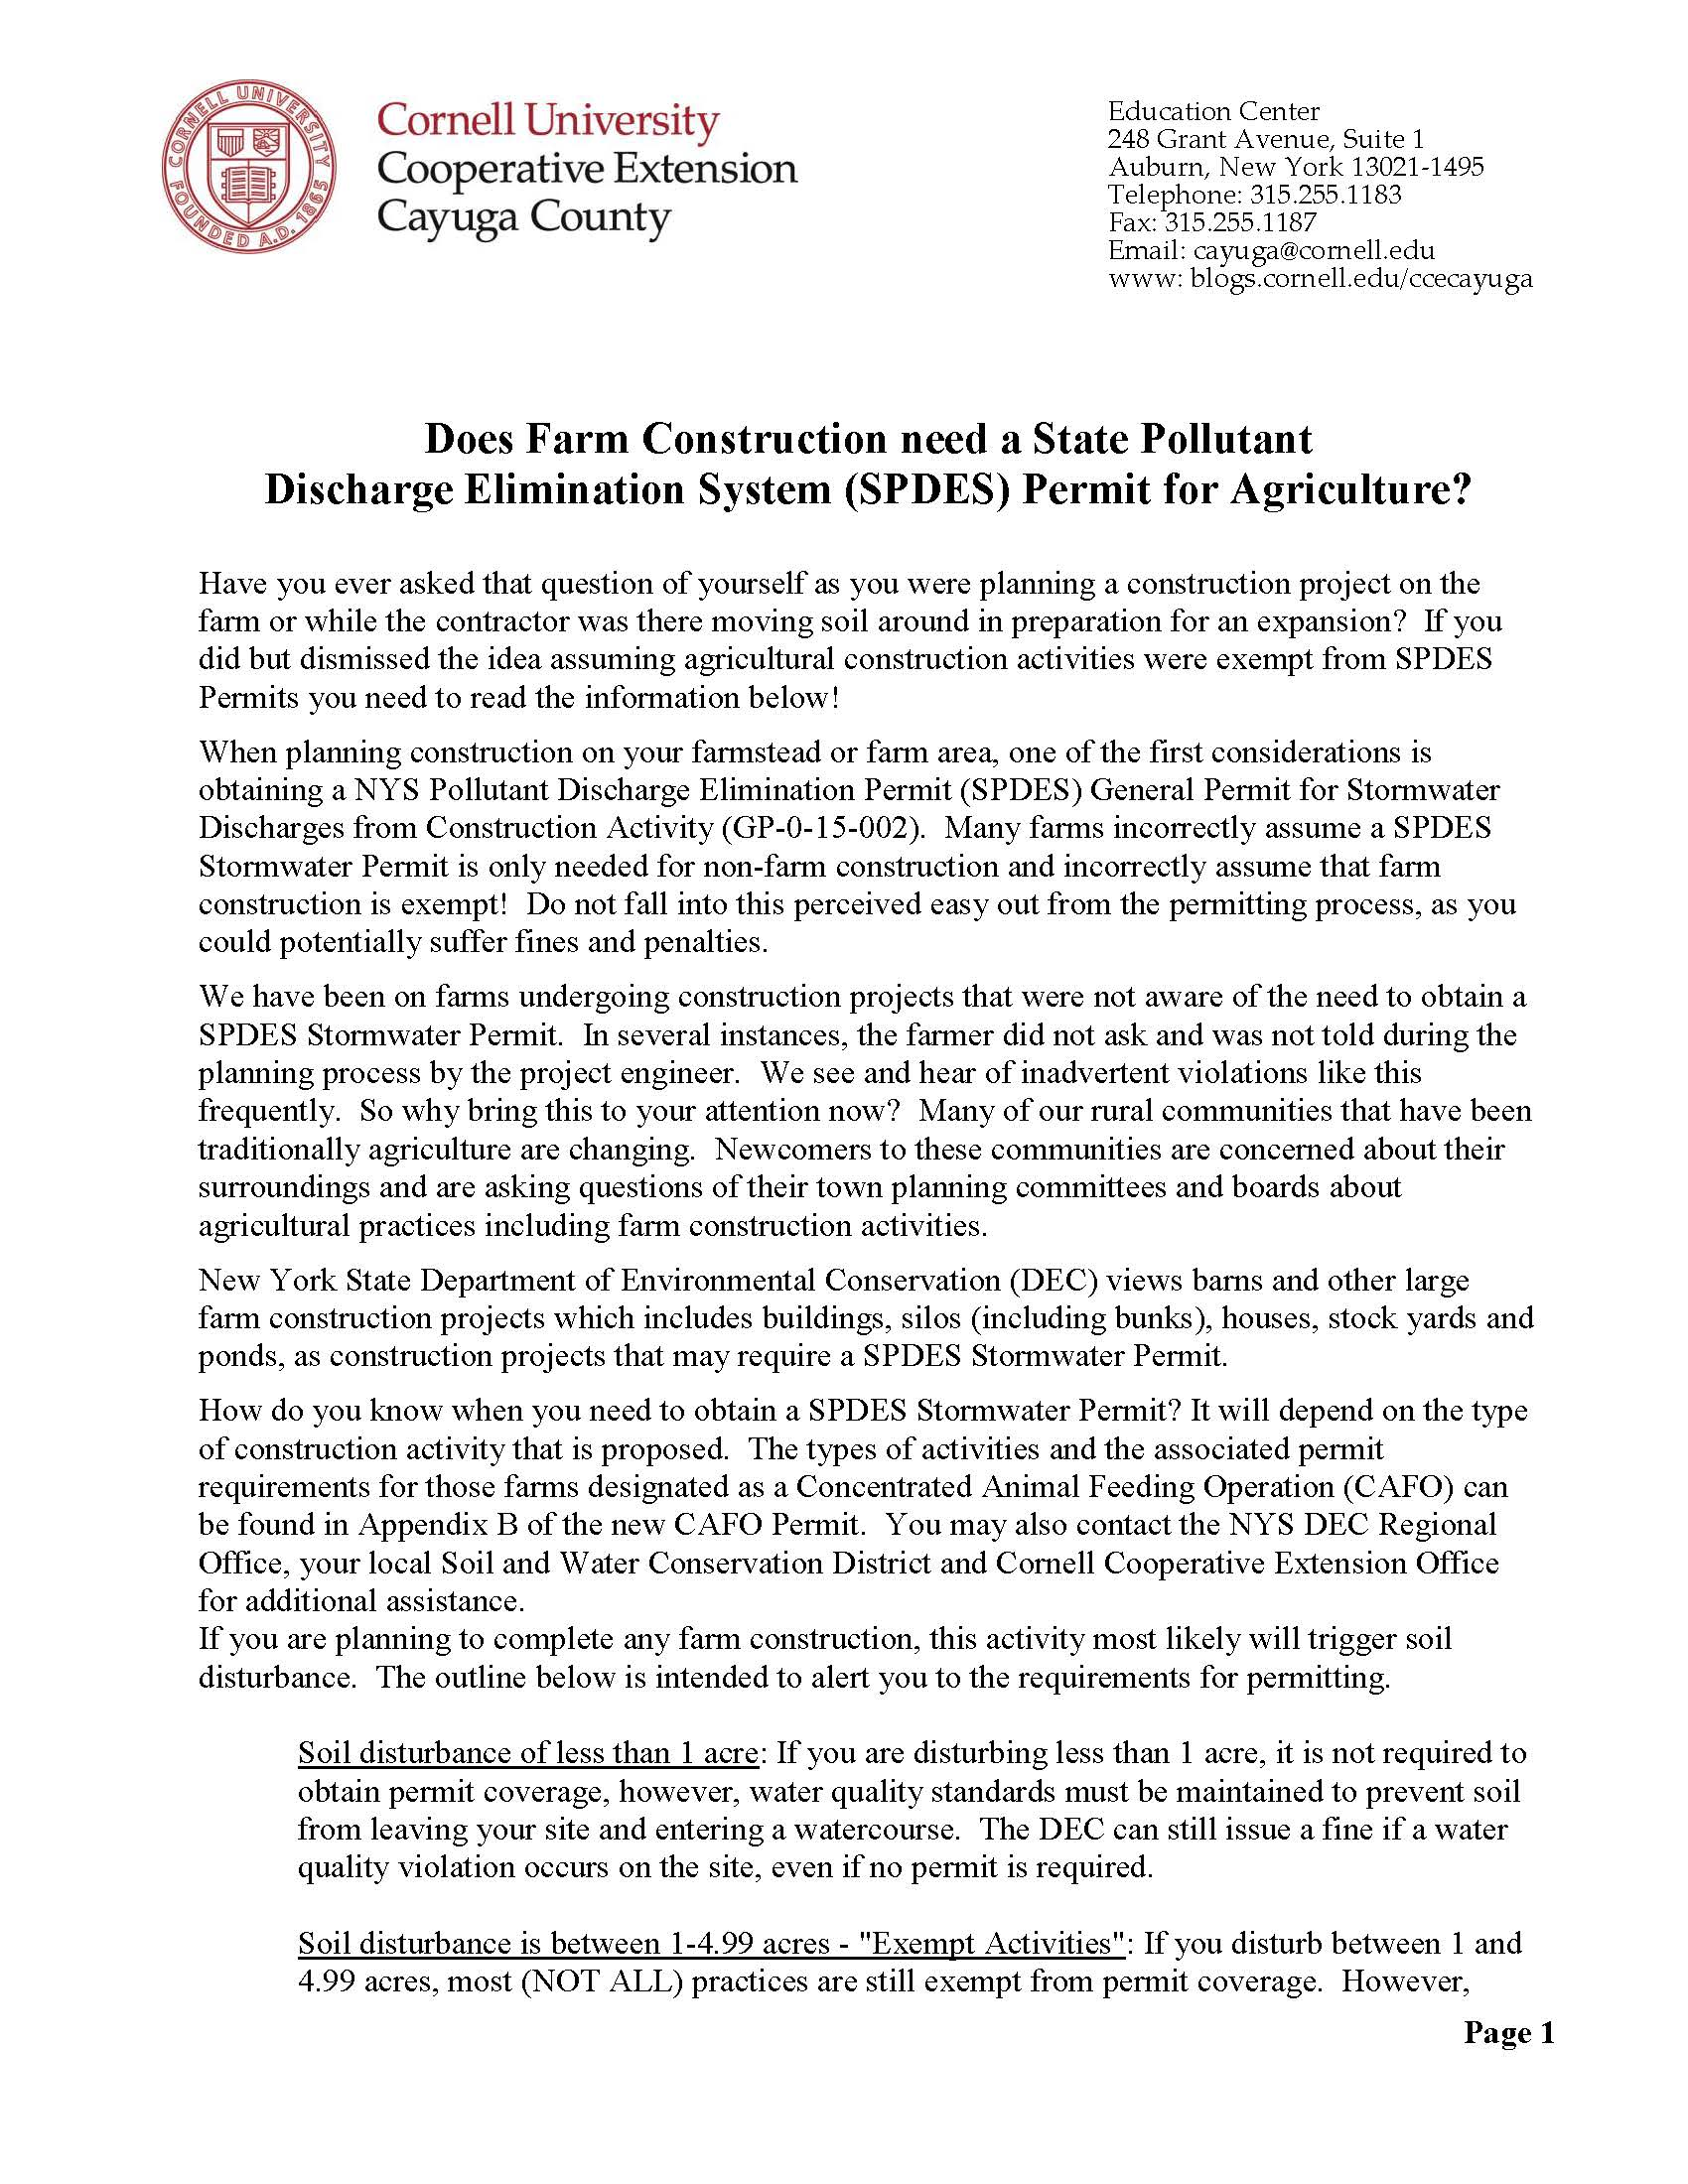 "Page 1 of PDF ""Does Farm Construction need a State Pollutant Discharge Elimination System Permit for Agriculture"""